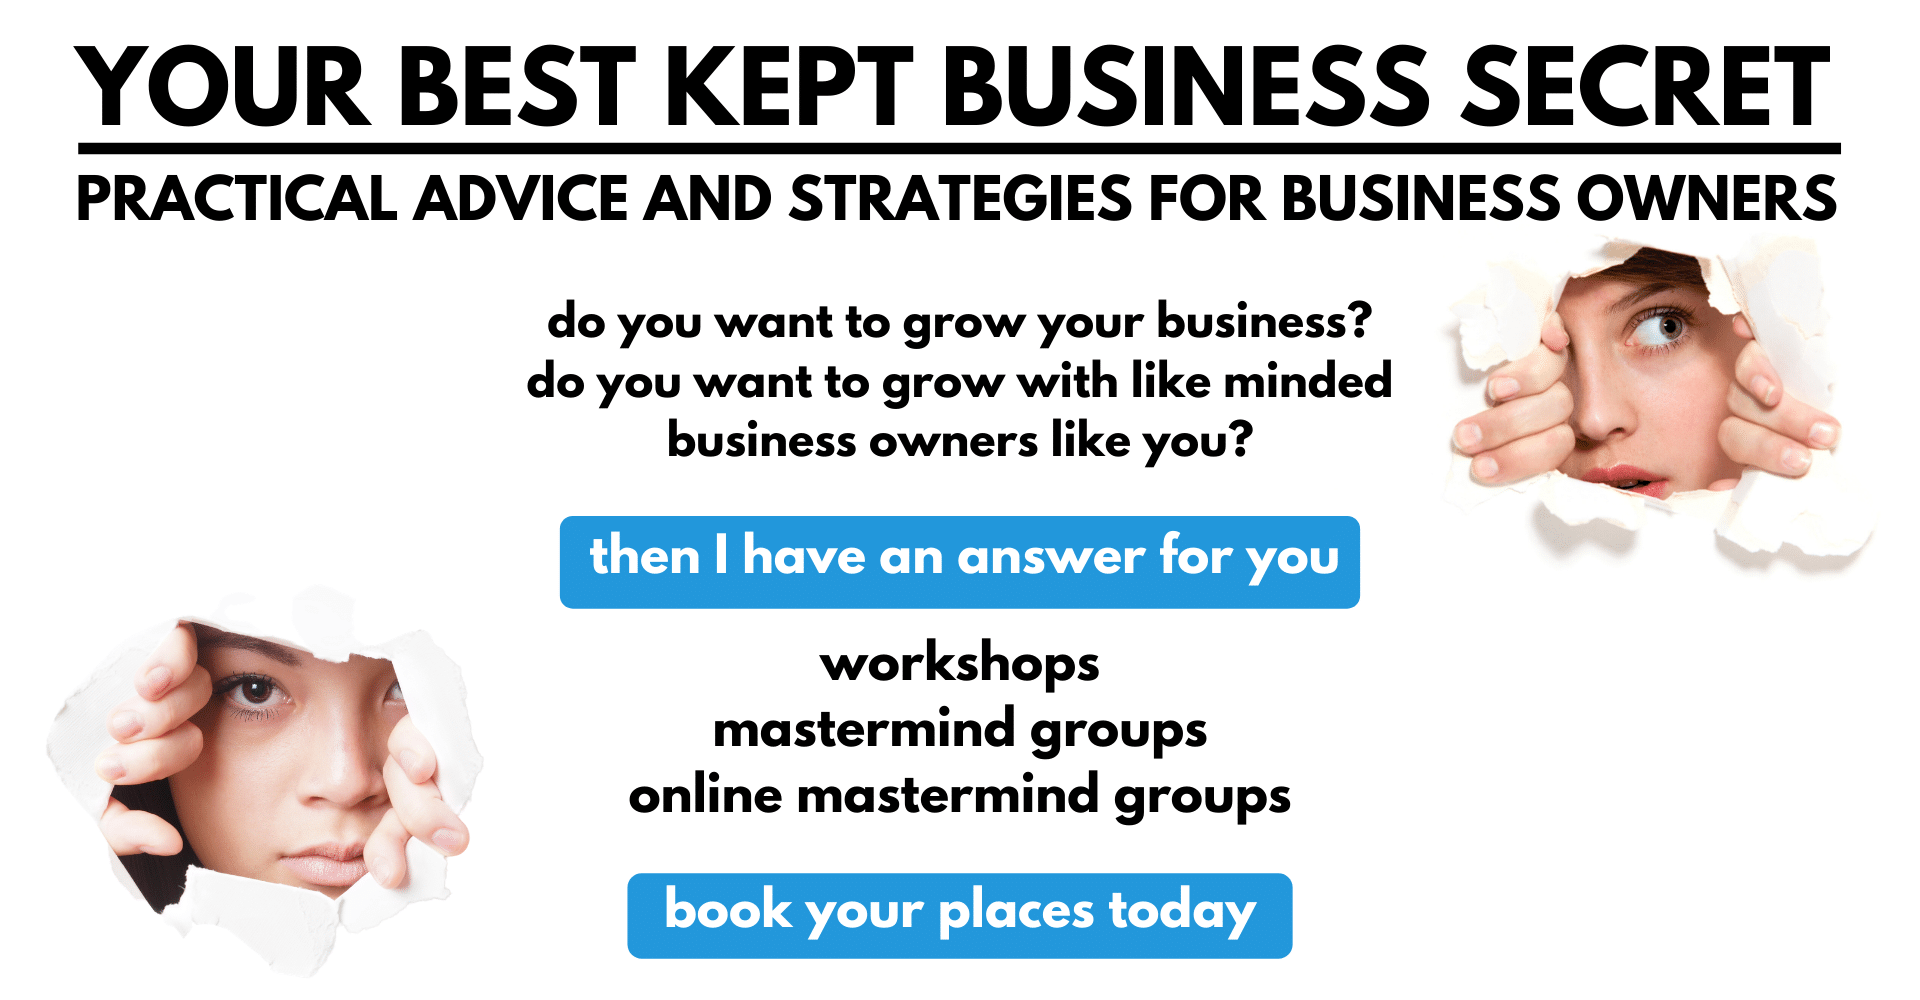 mastermind groups and workshops for business owners with Marc Ford business coach in leicester, Leicestershire, East Midlands